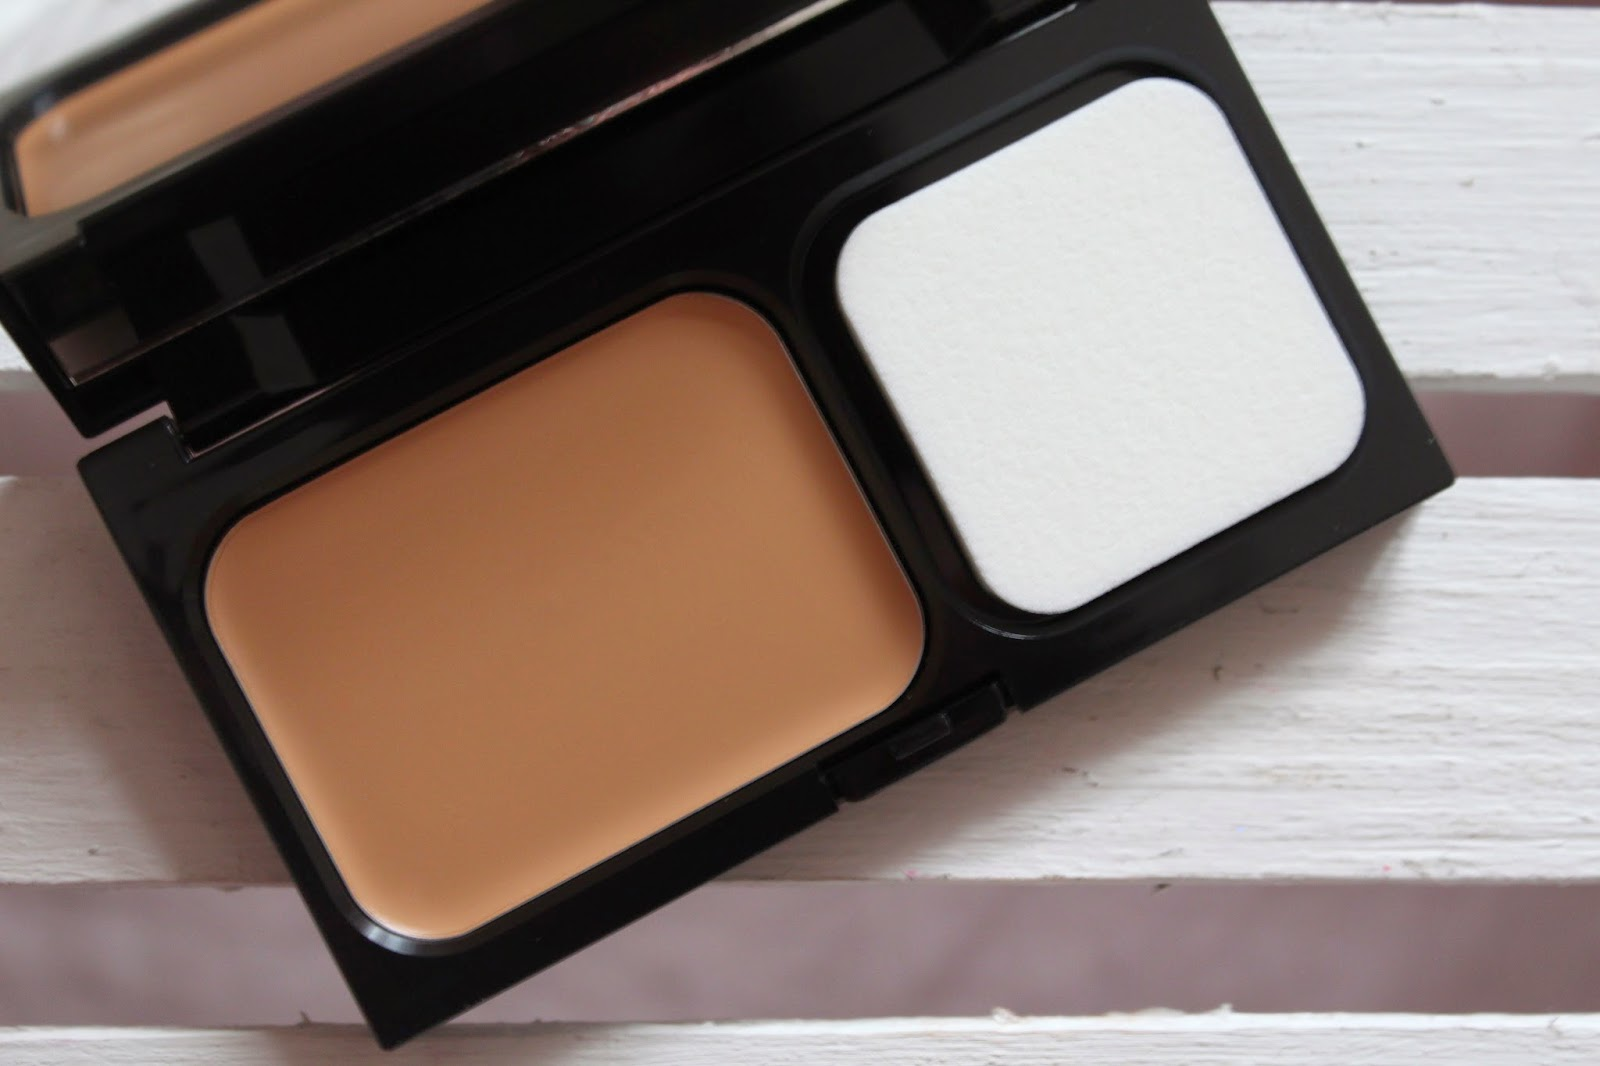 vichy compact foundation